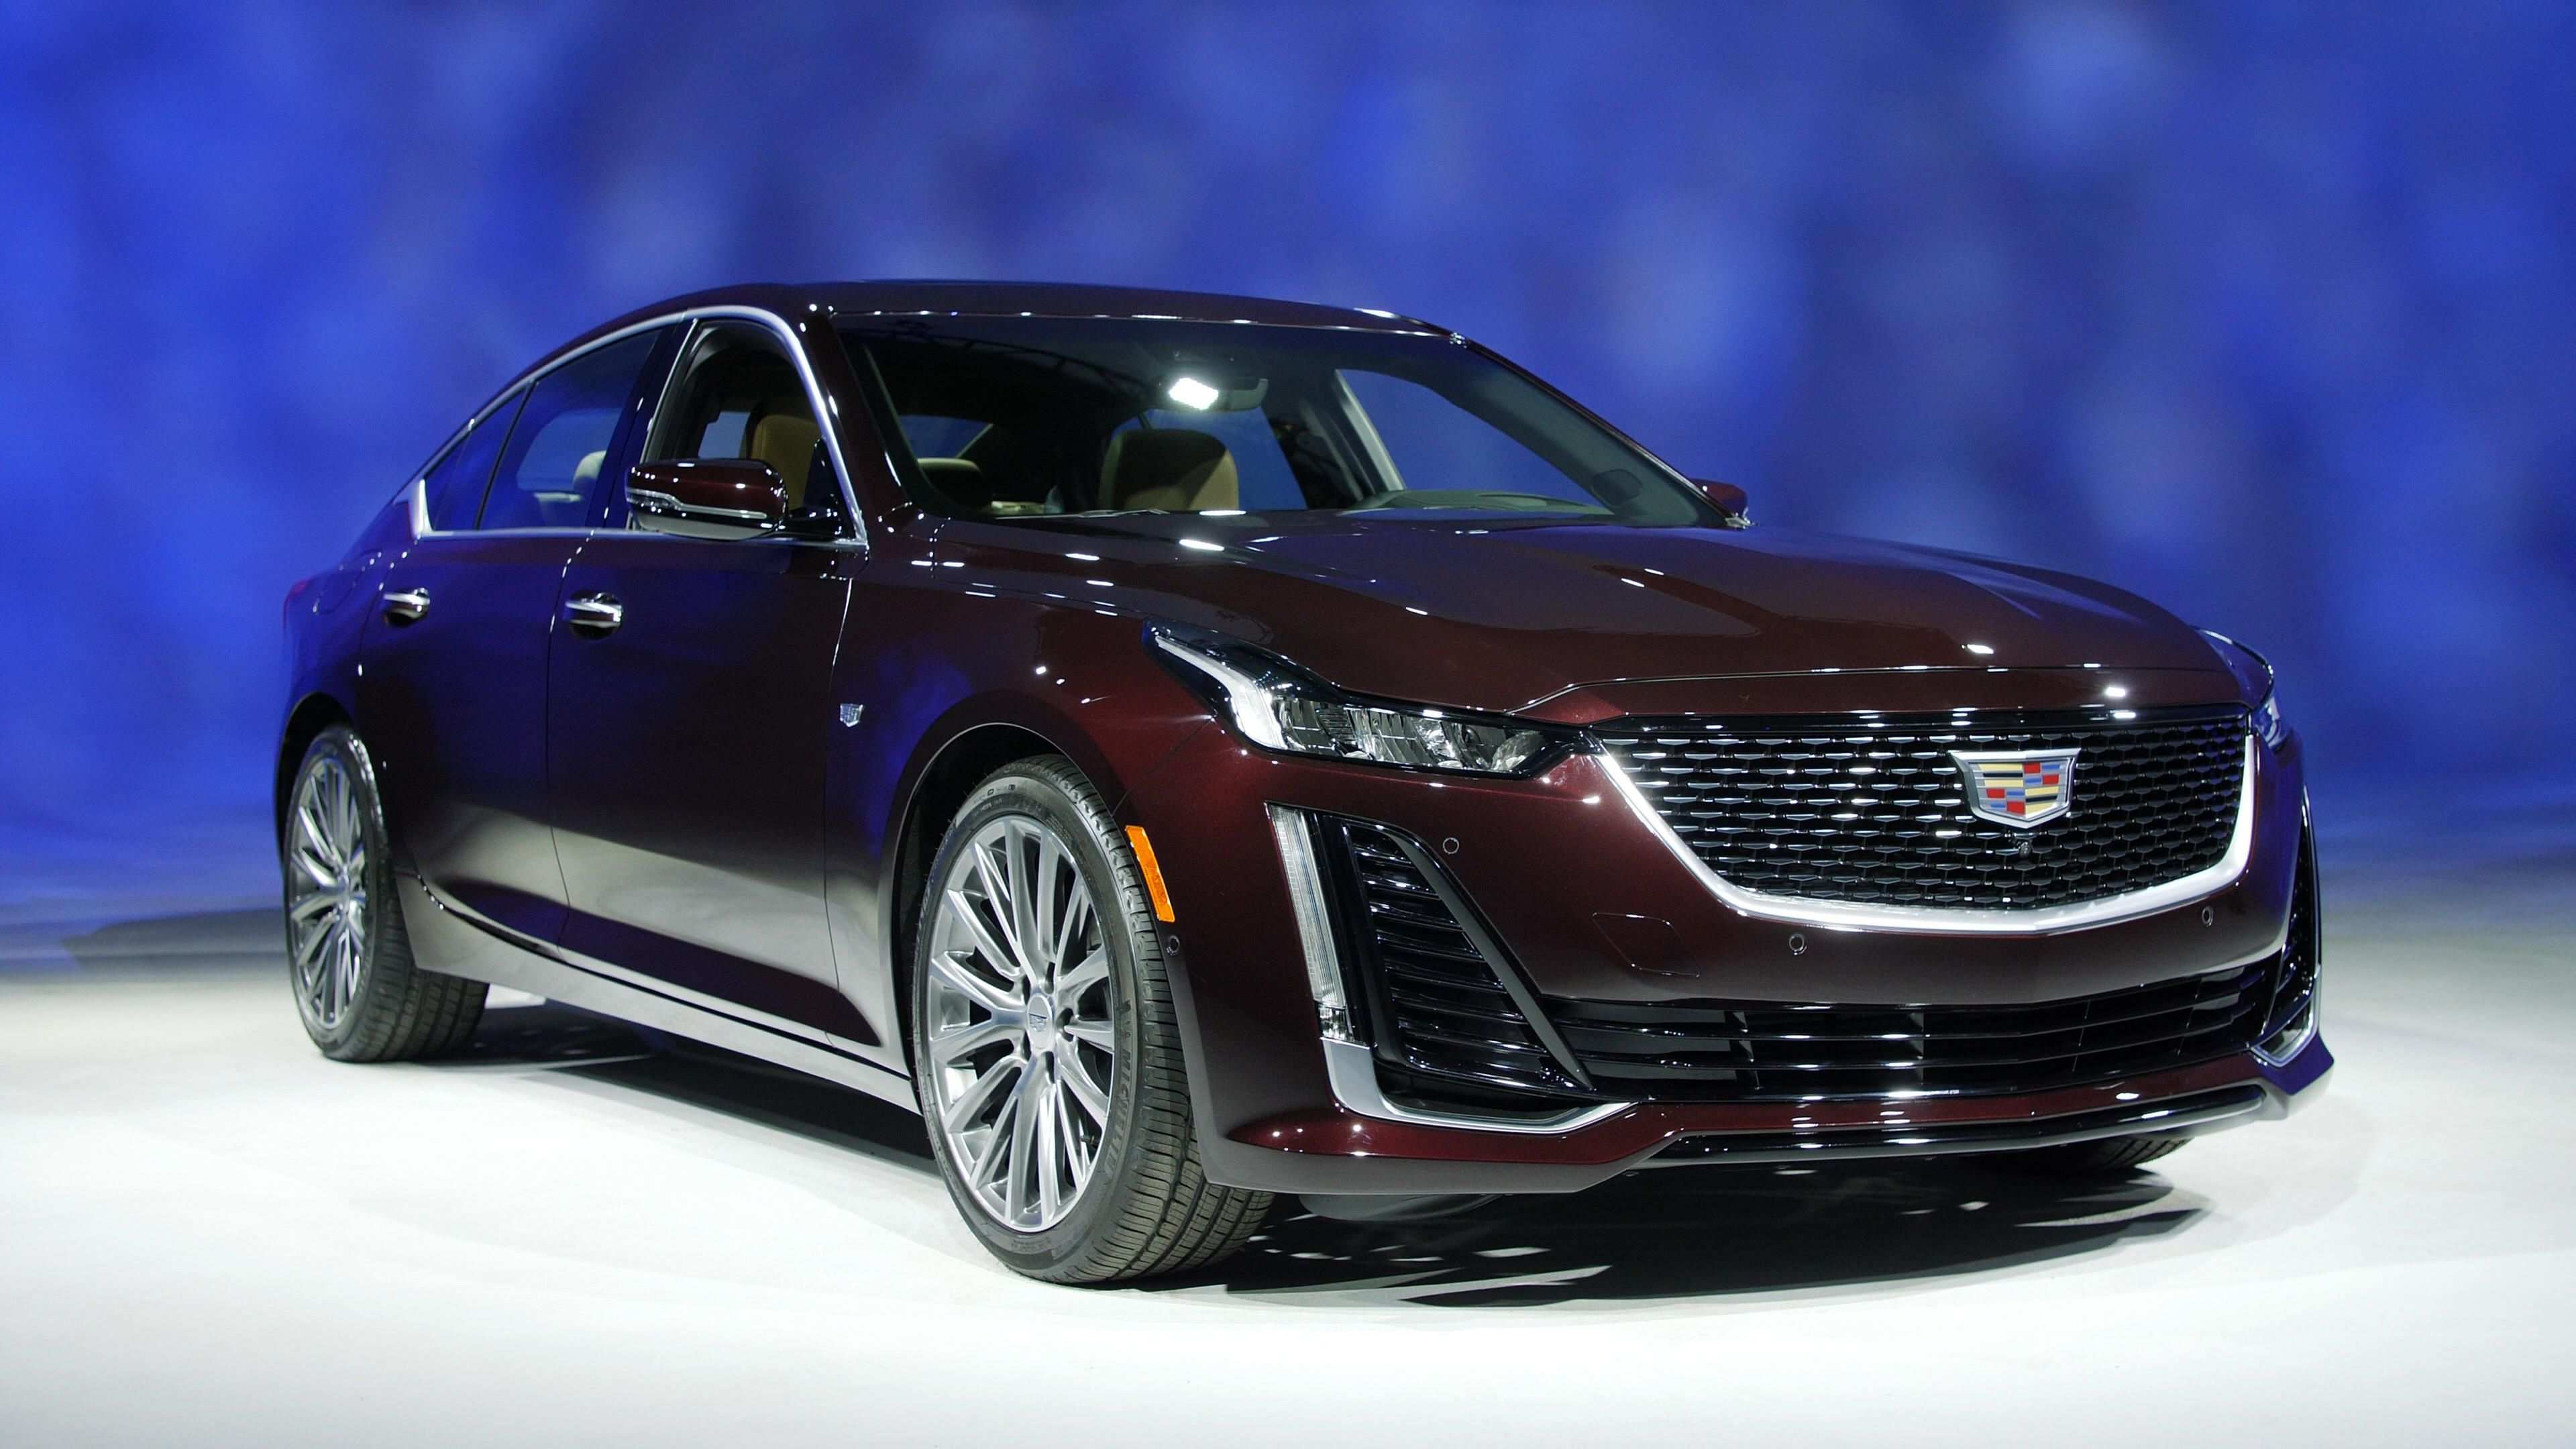 53 New New Cadillac Sedans For 2020 Concept And Review